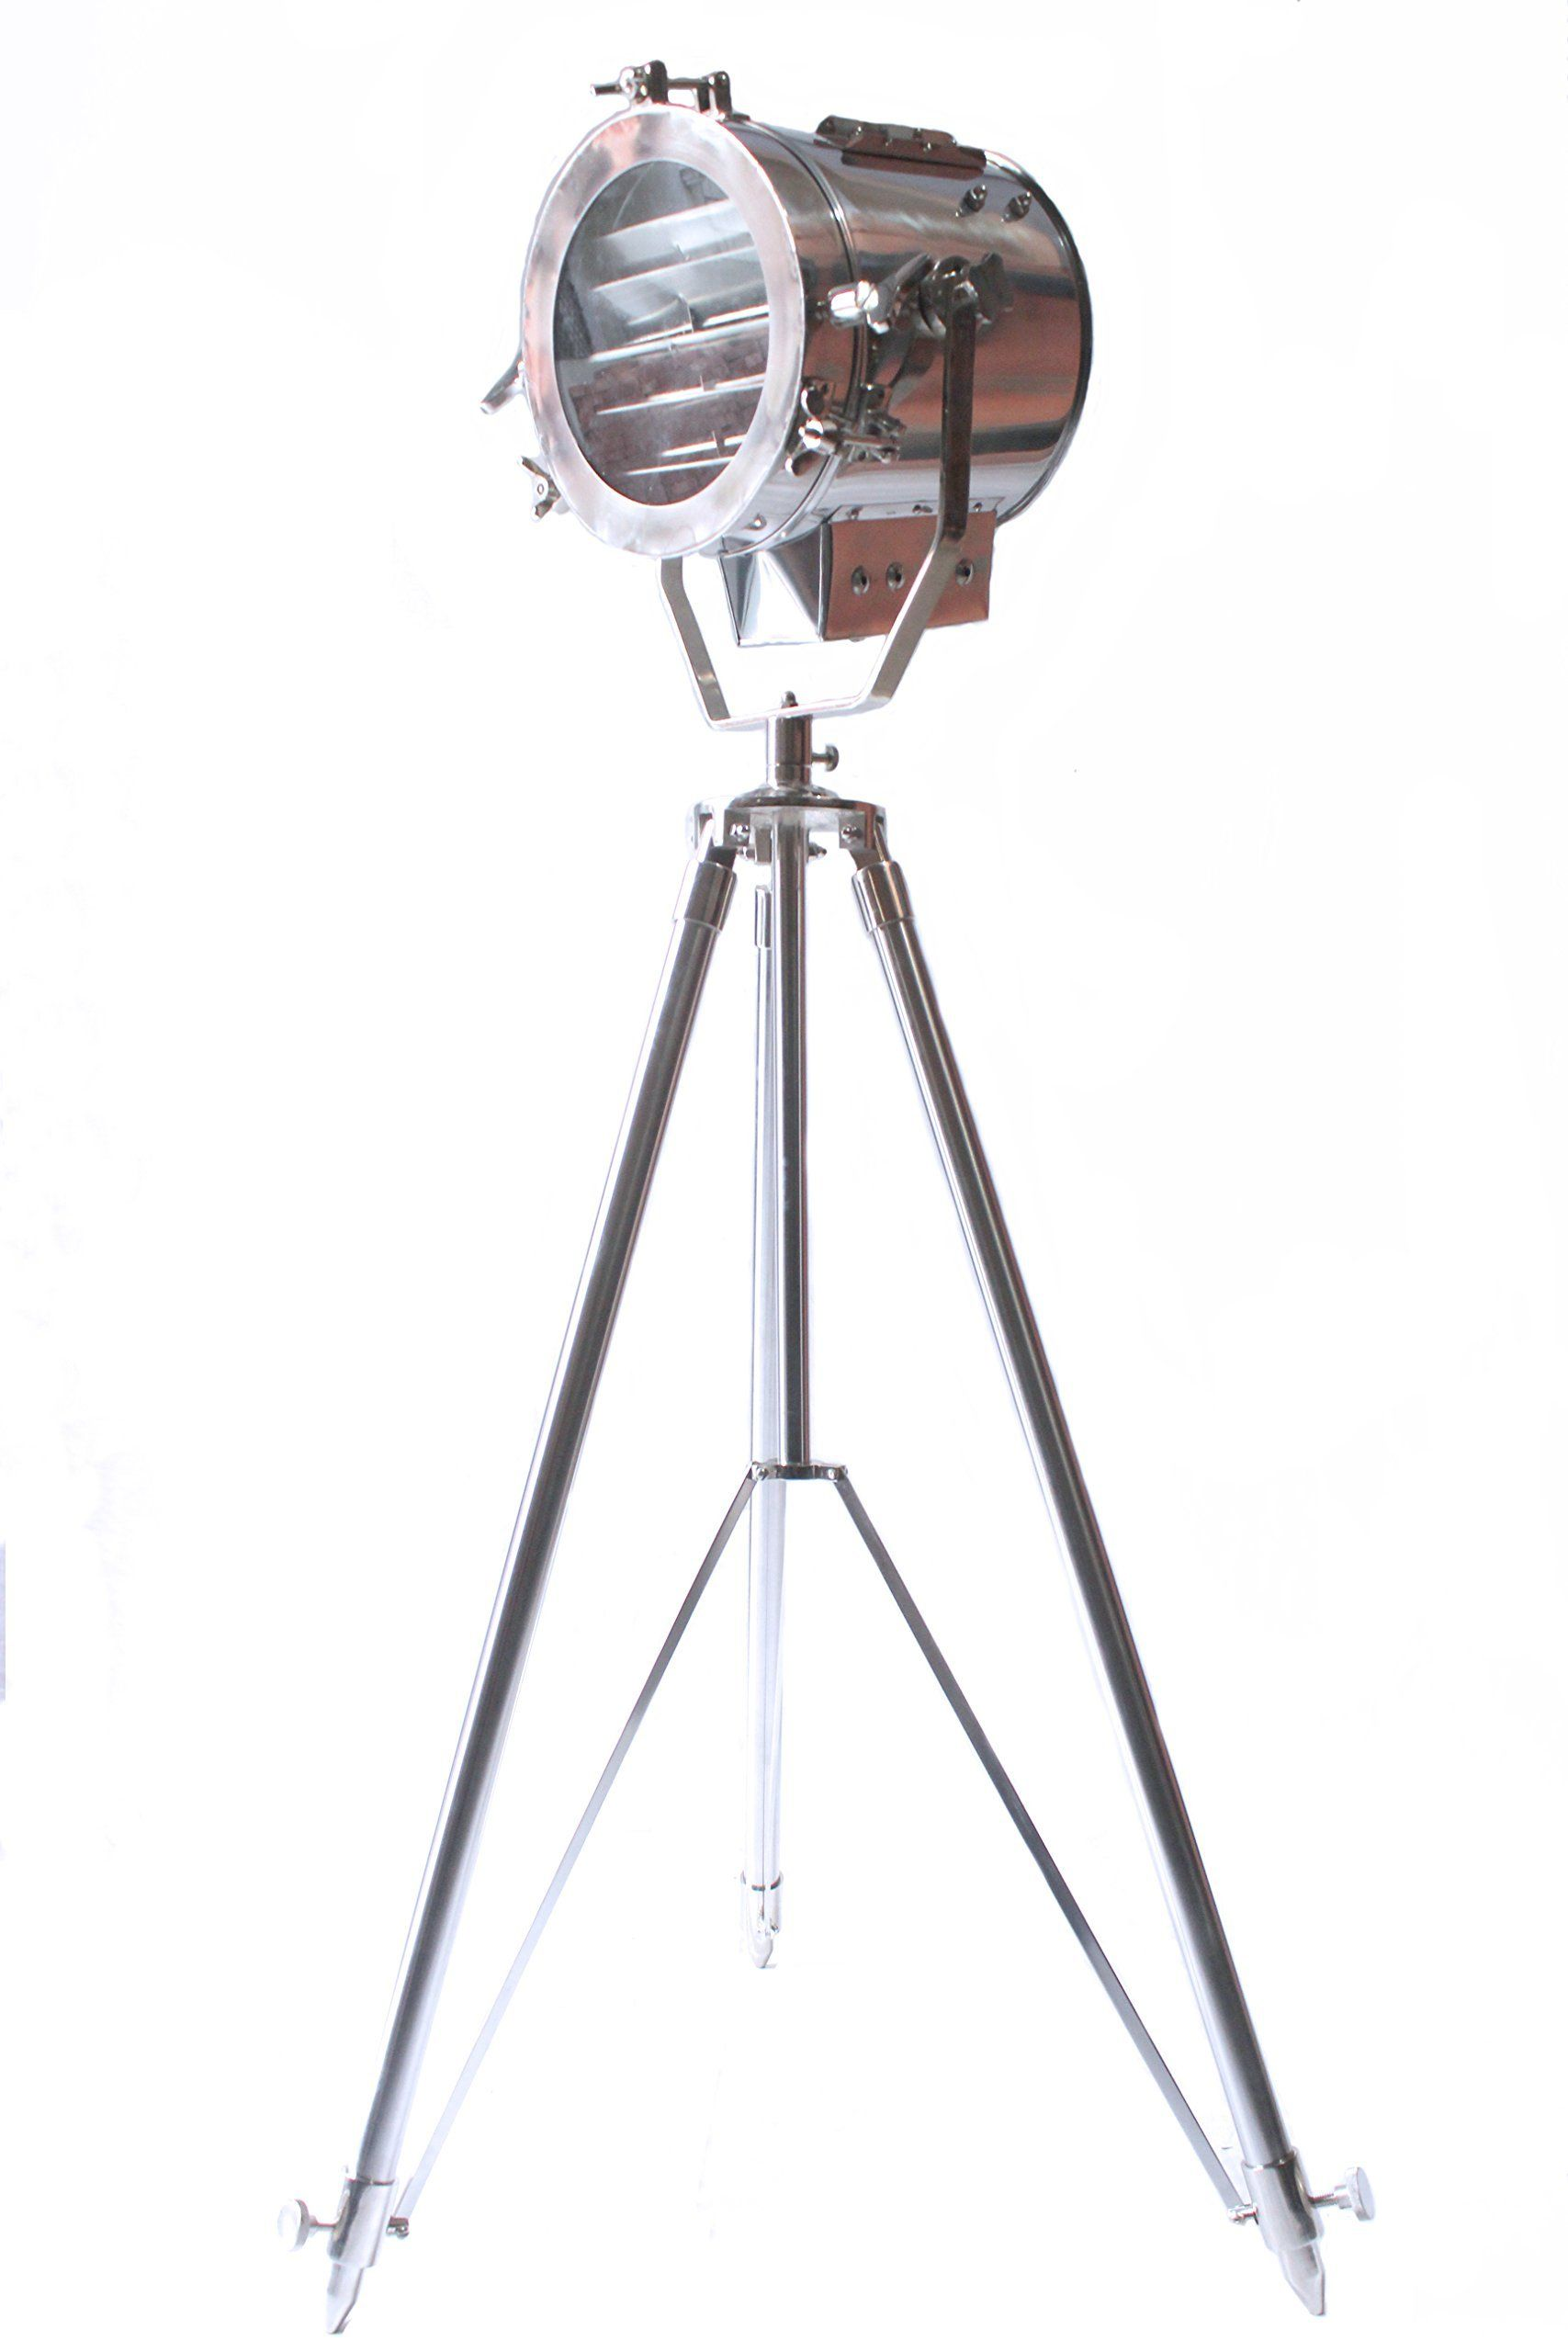 of theater light Lighting & Ceiling Fans Nautical Steel